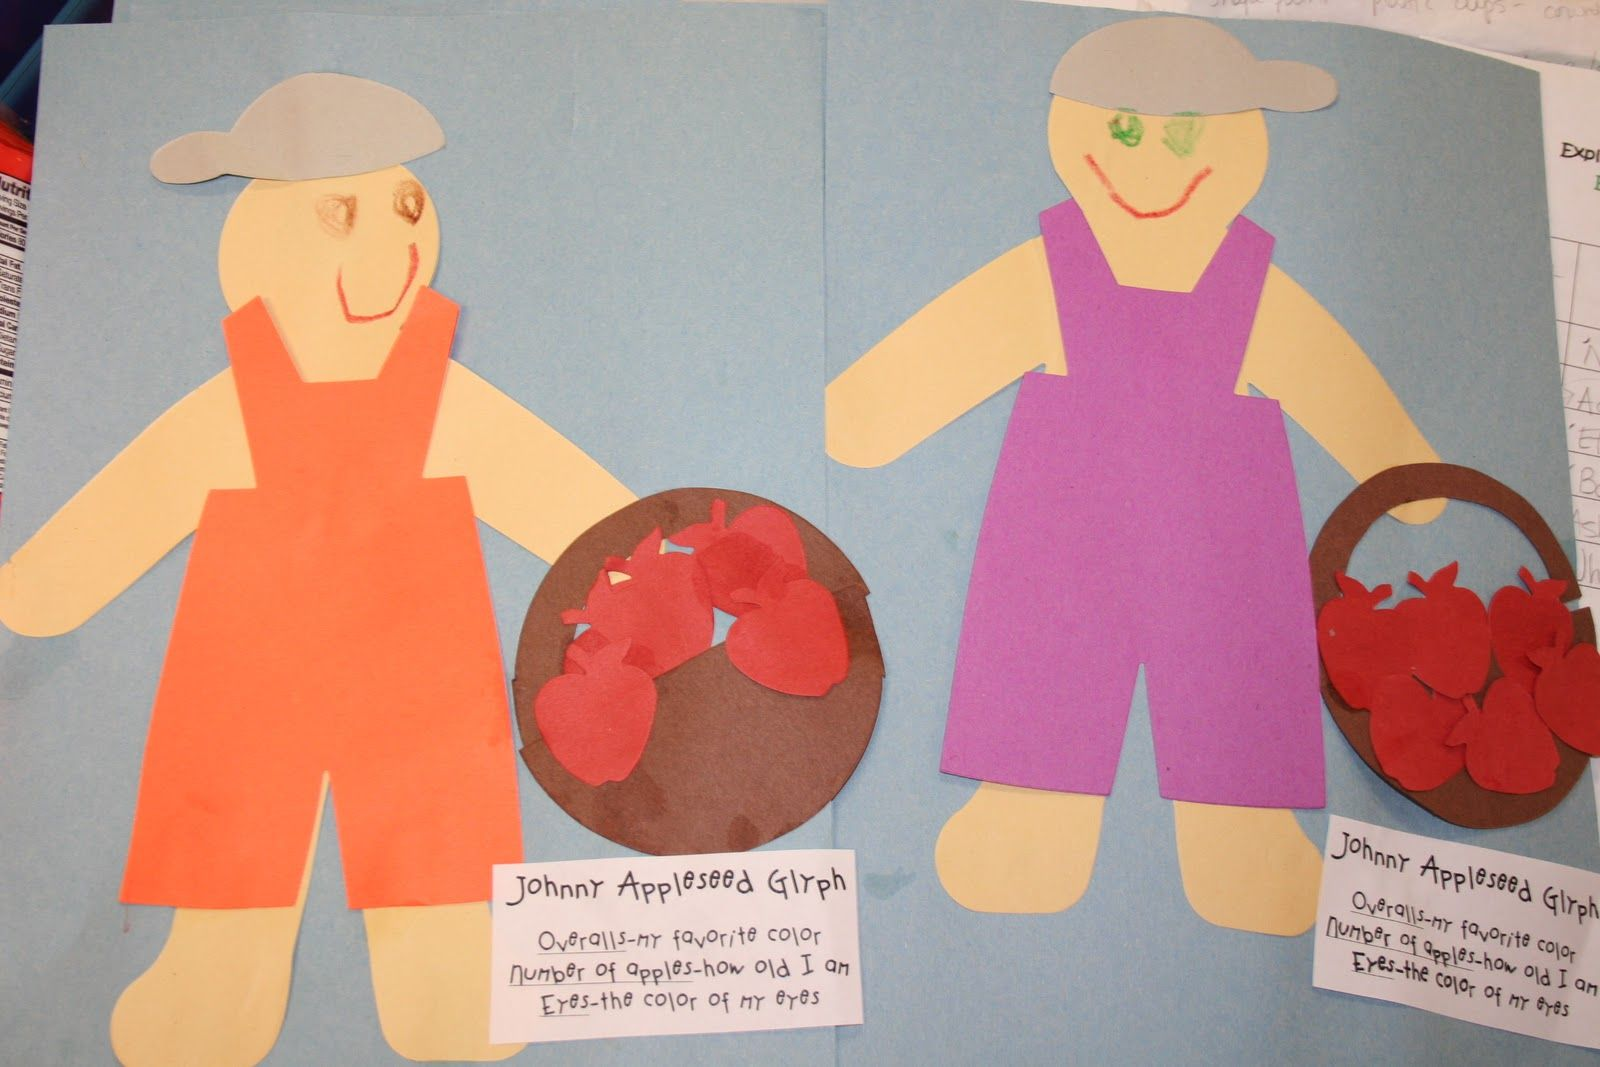 Johnny Appleseed Glyph